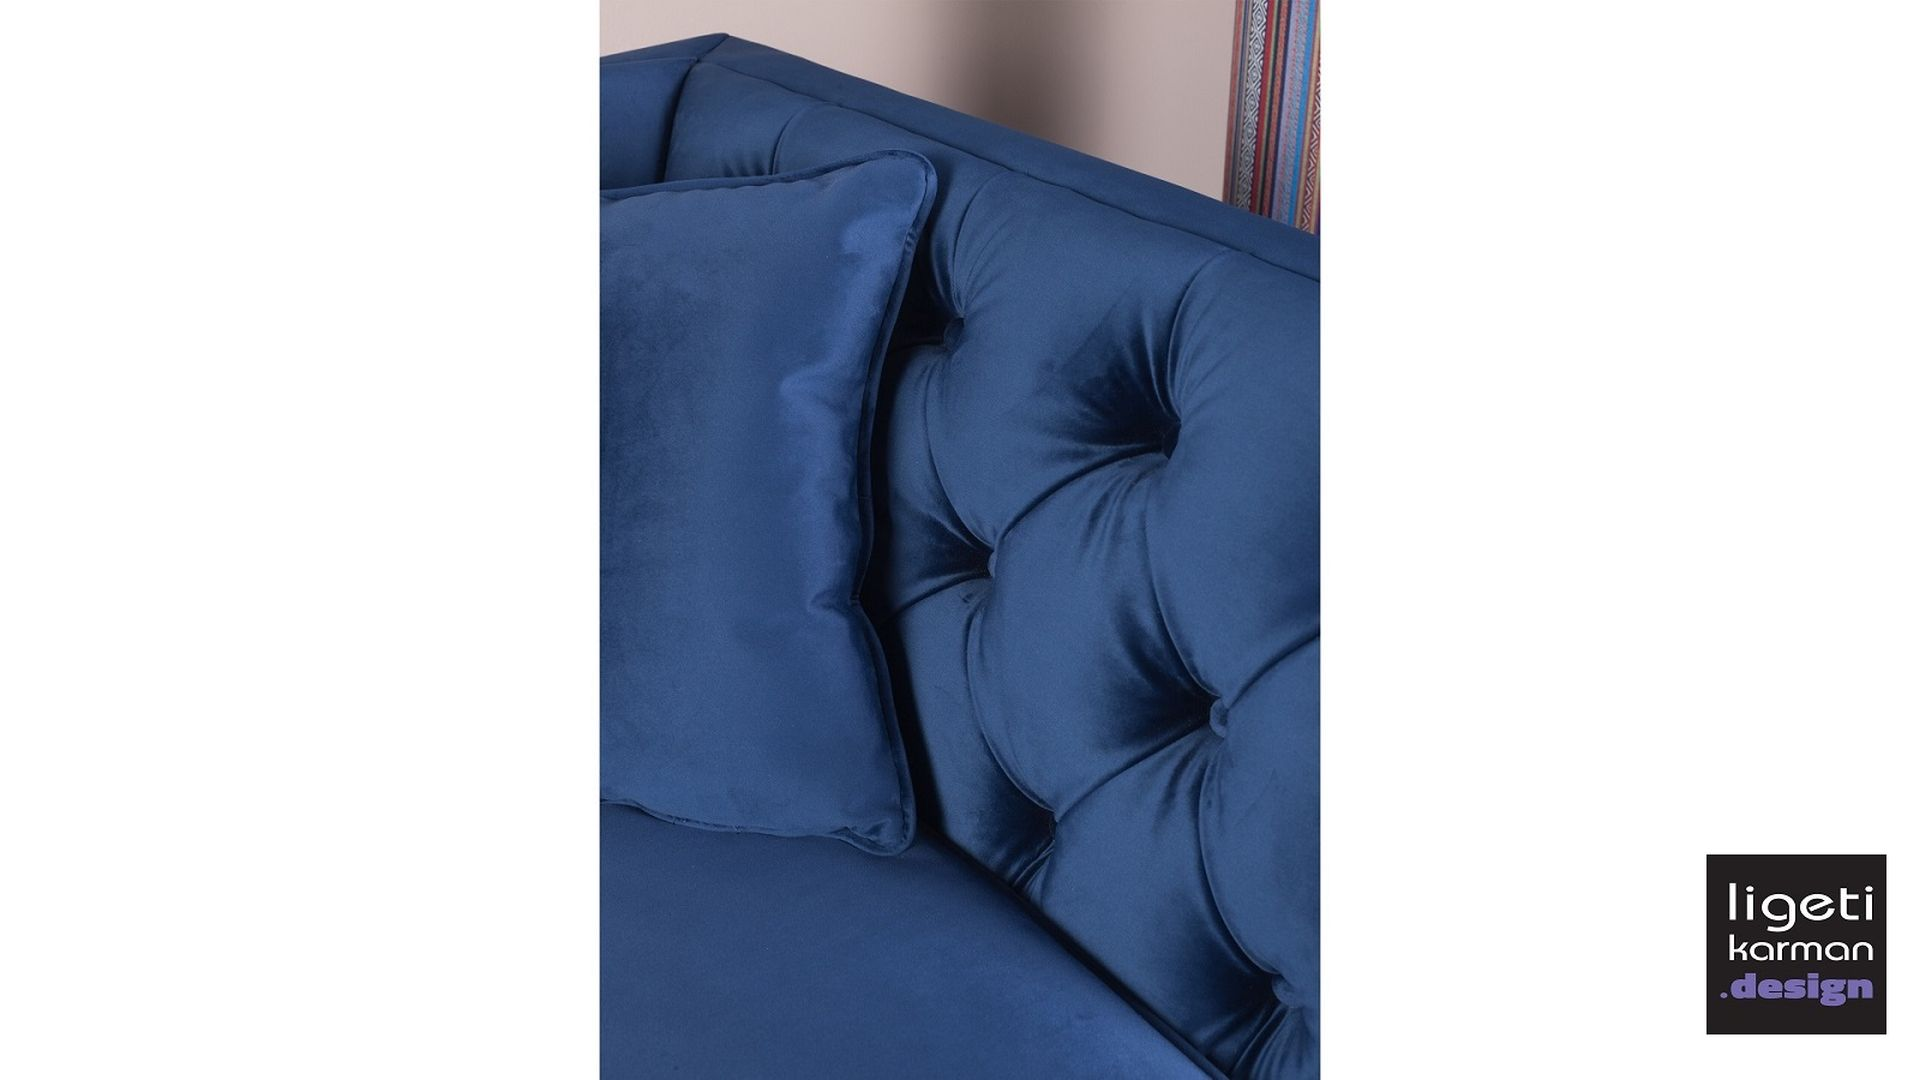 miotto_Amiato lounge royal blue furniture miotto_4899